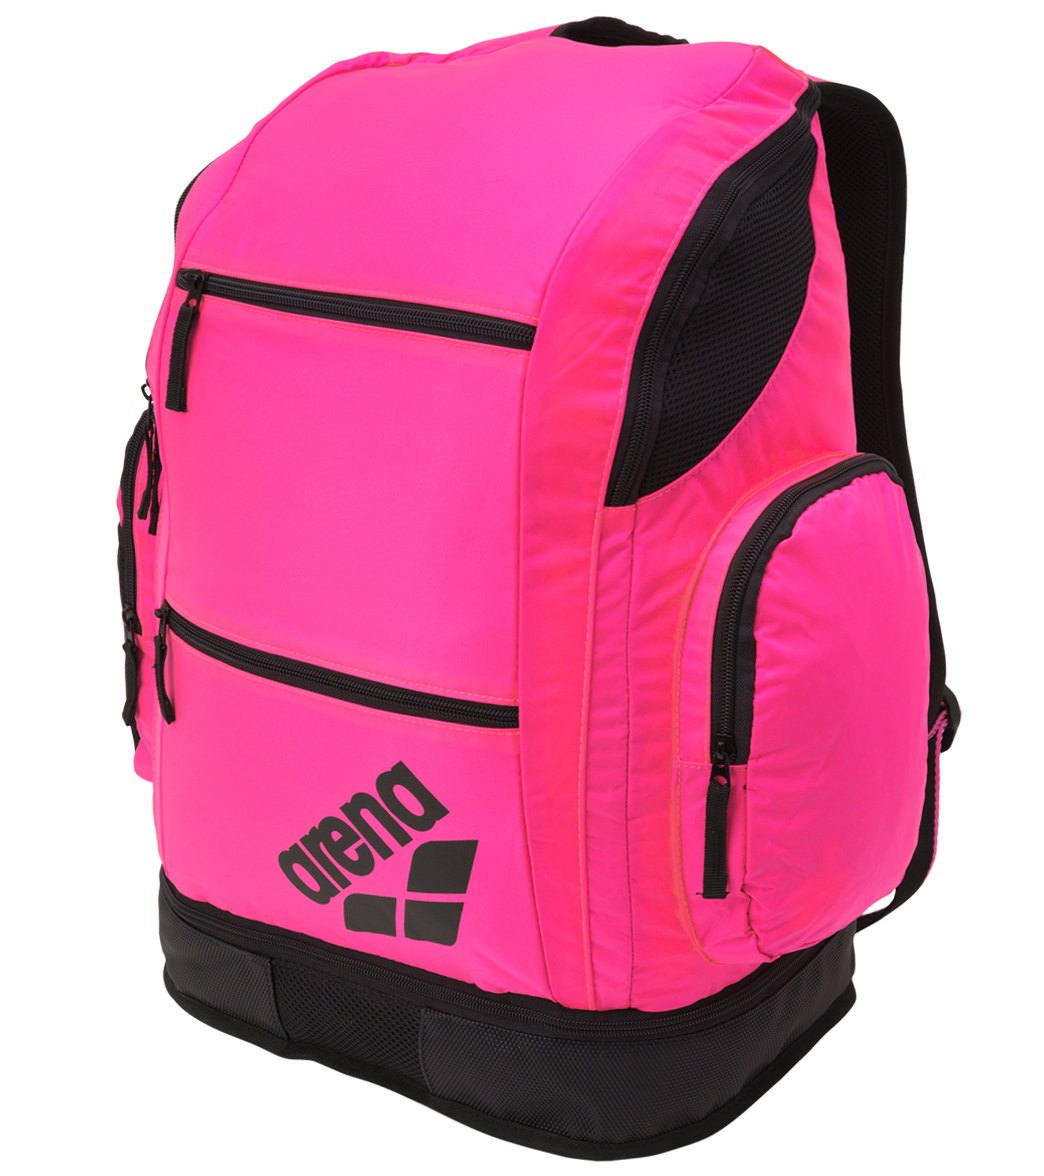 955ad8b04039 Arena Solid Spiky 2 Large Backpack at SwimOutlet.com - Free Shipping